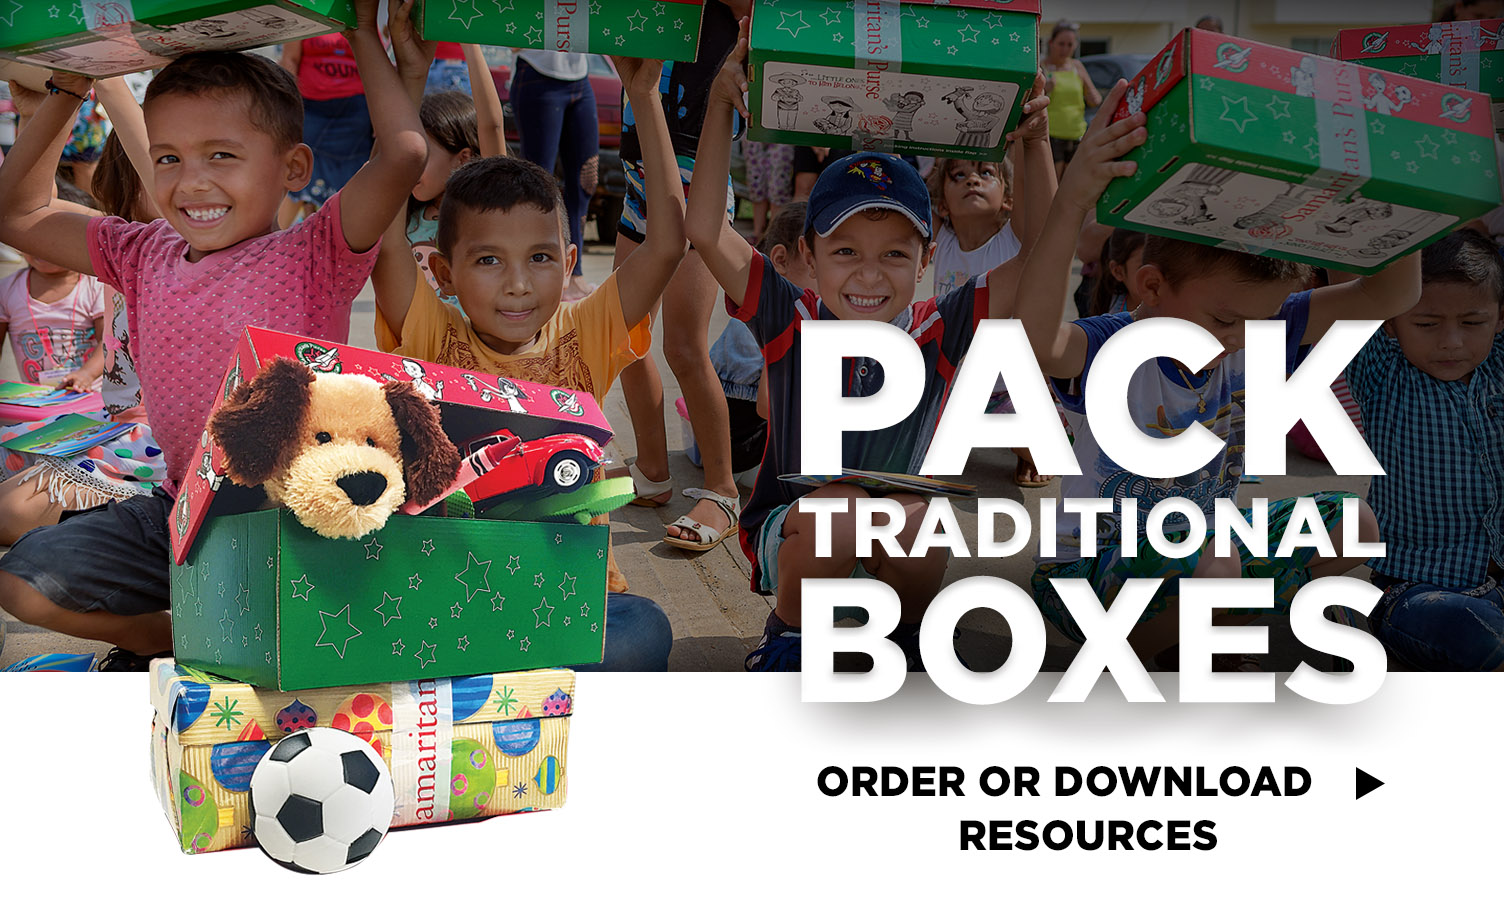 Pack traditional shoeboxes - order or download resources